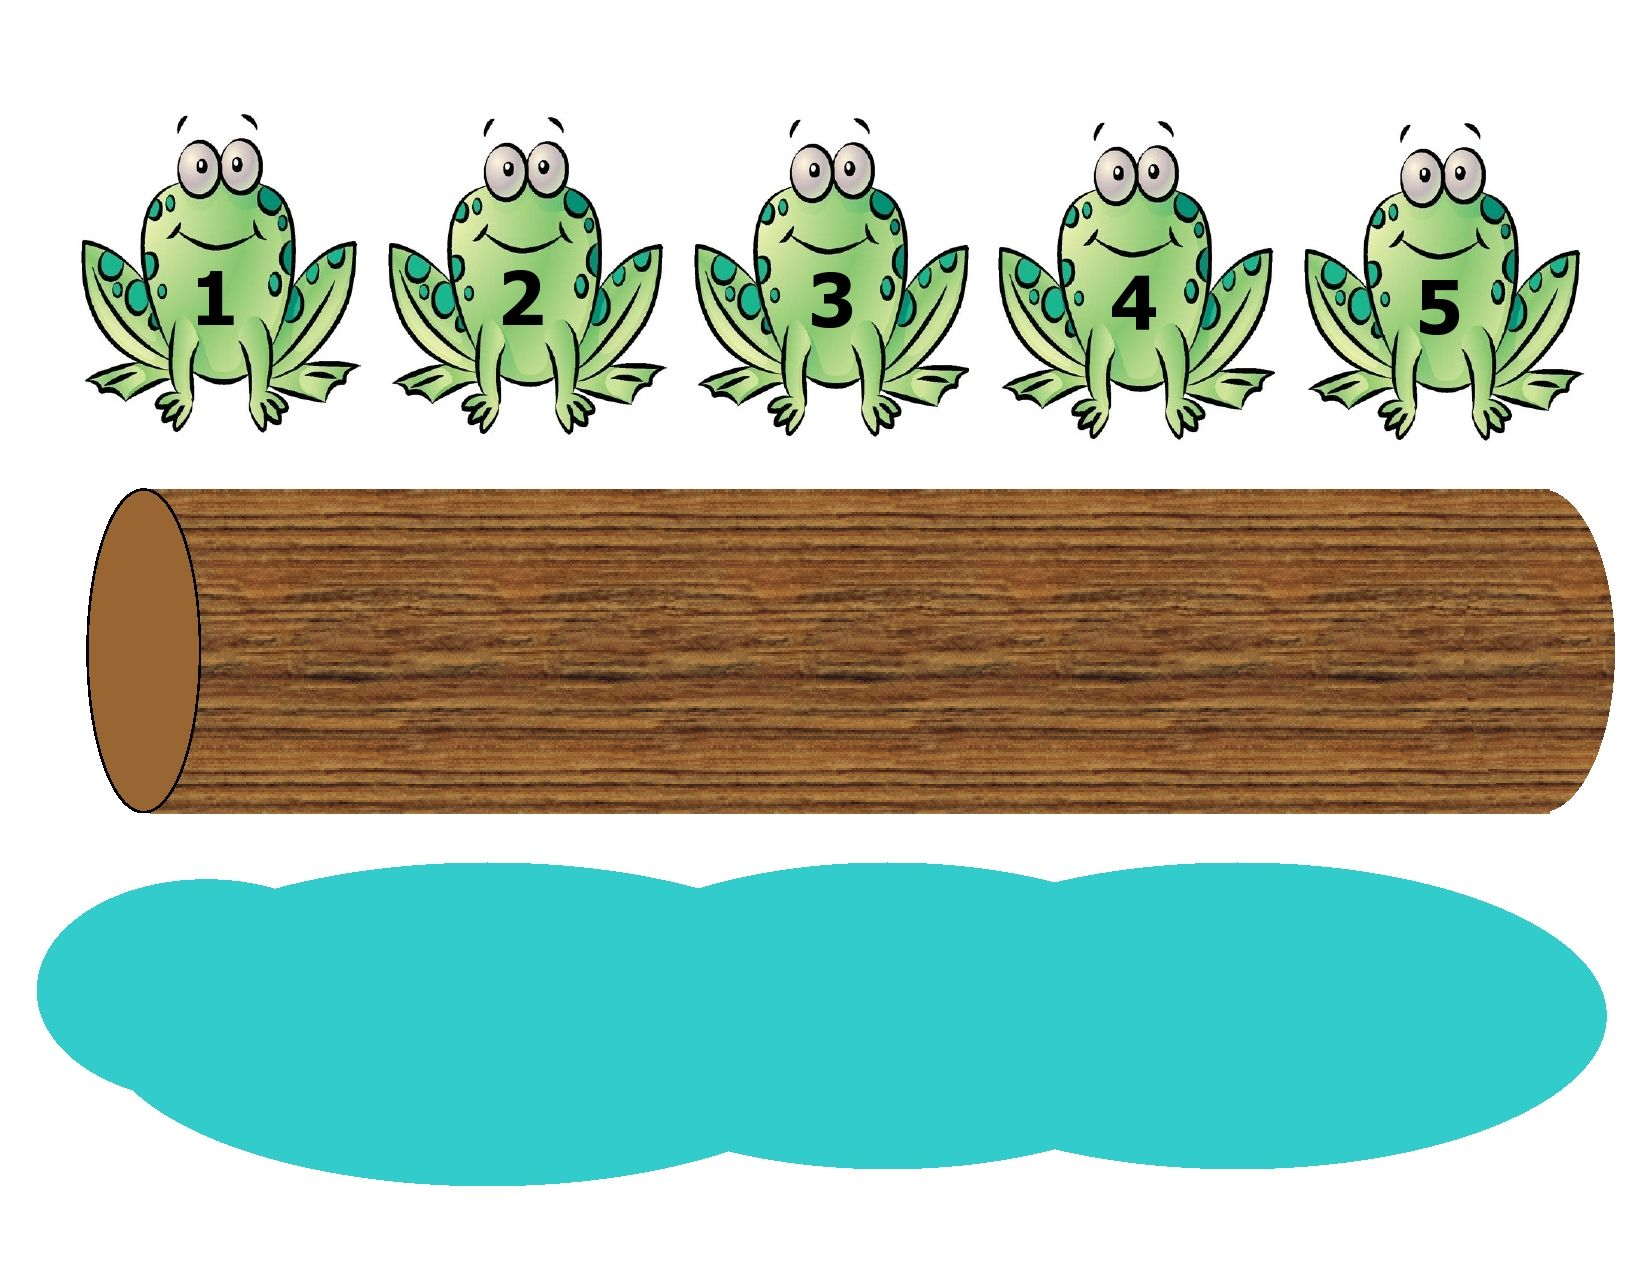 Five Green and Speckled Frogs fingerplay is a fun way to introduce.